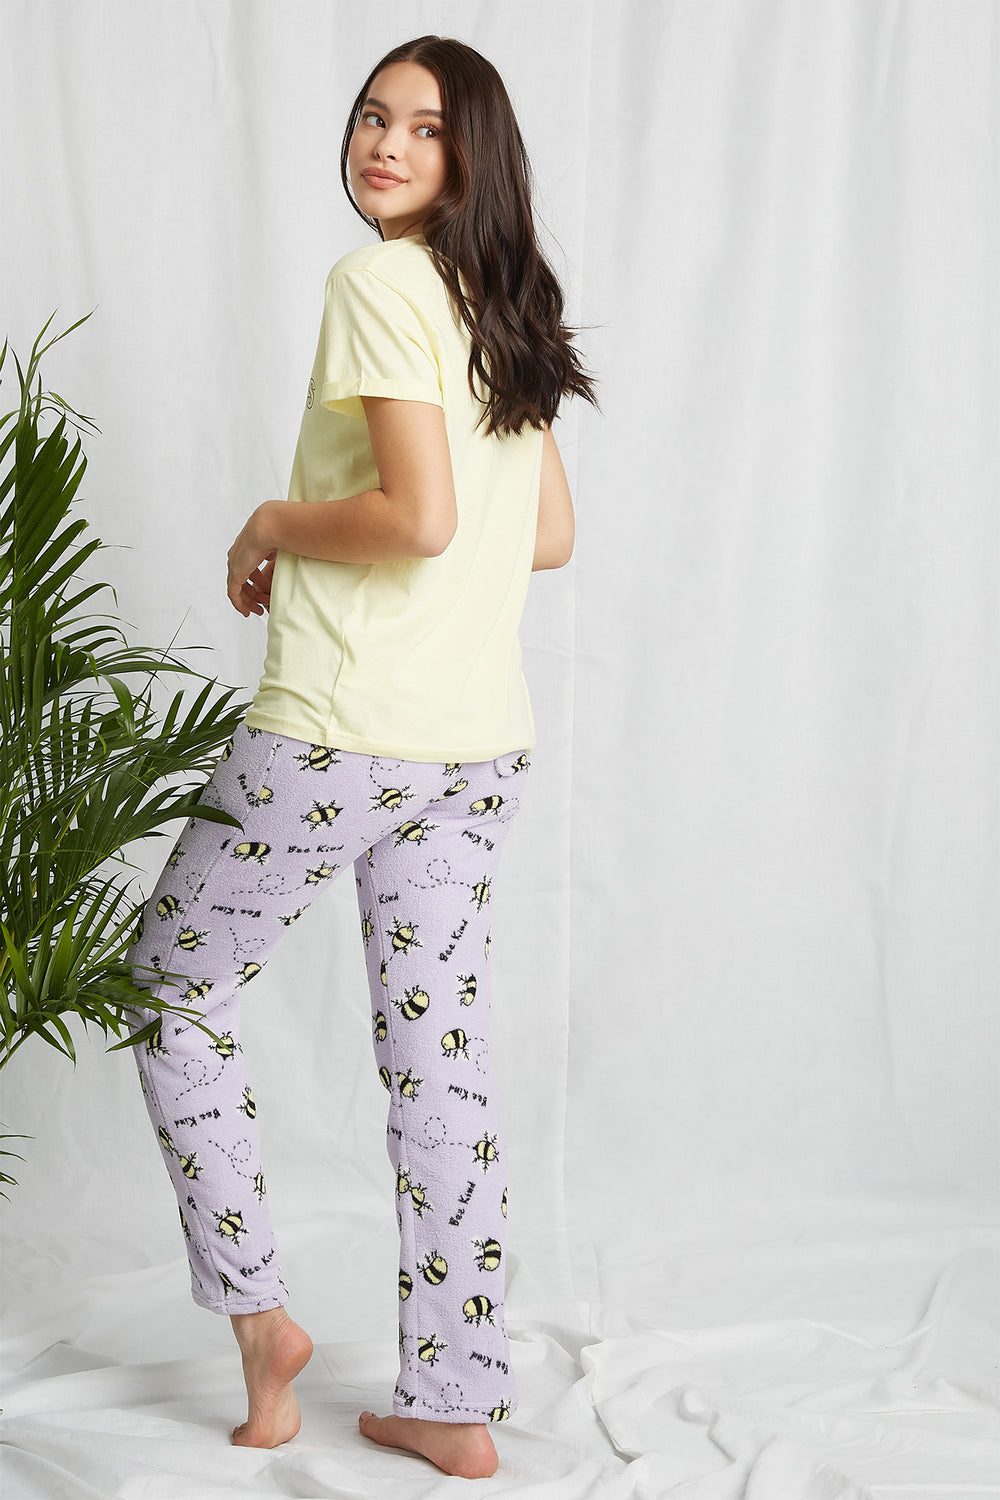 REPREVE® Eco-Friendly Recycled Polyester Graphic Pajama Pant Lilac